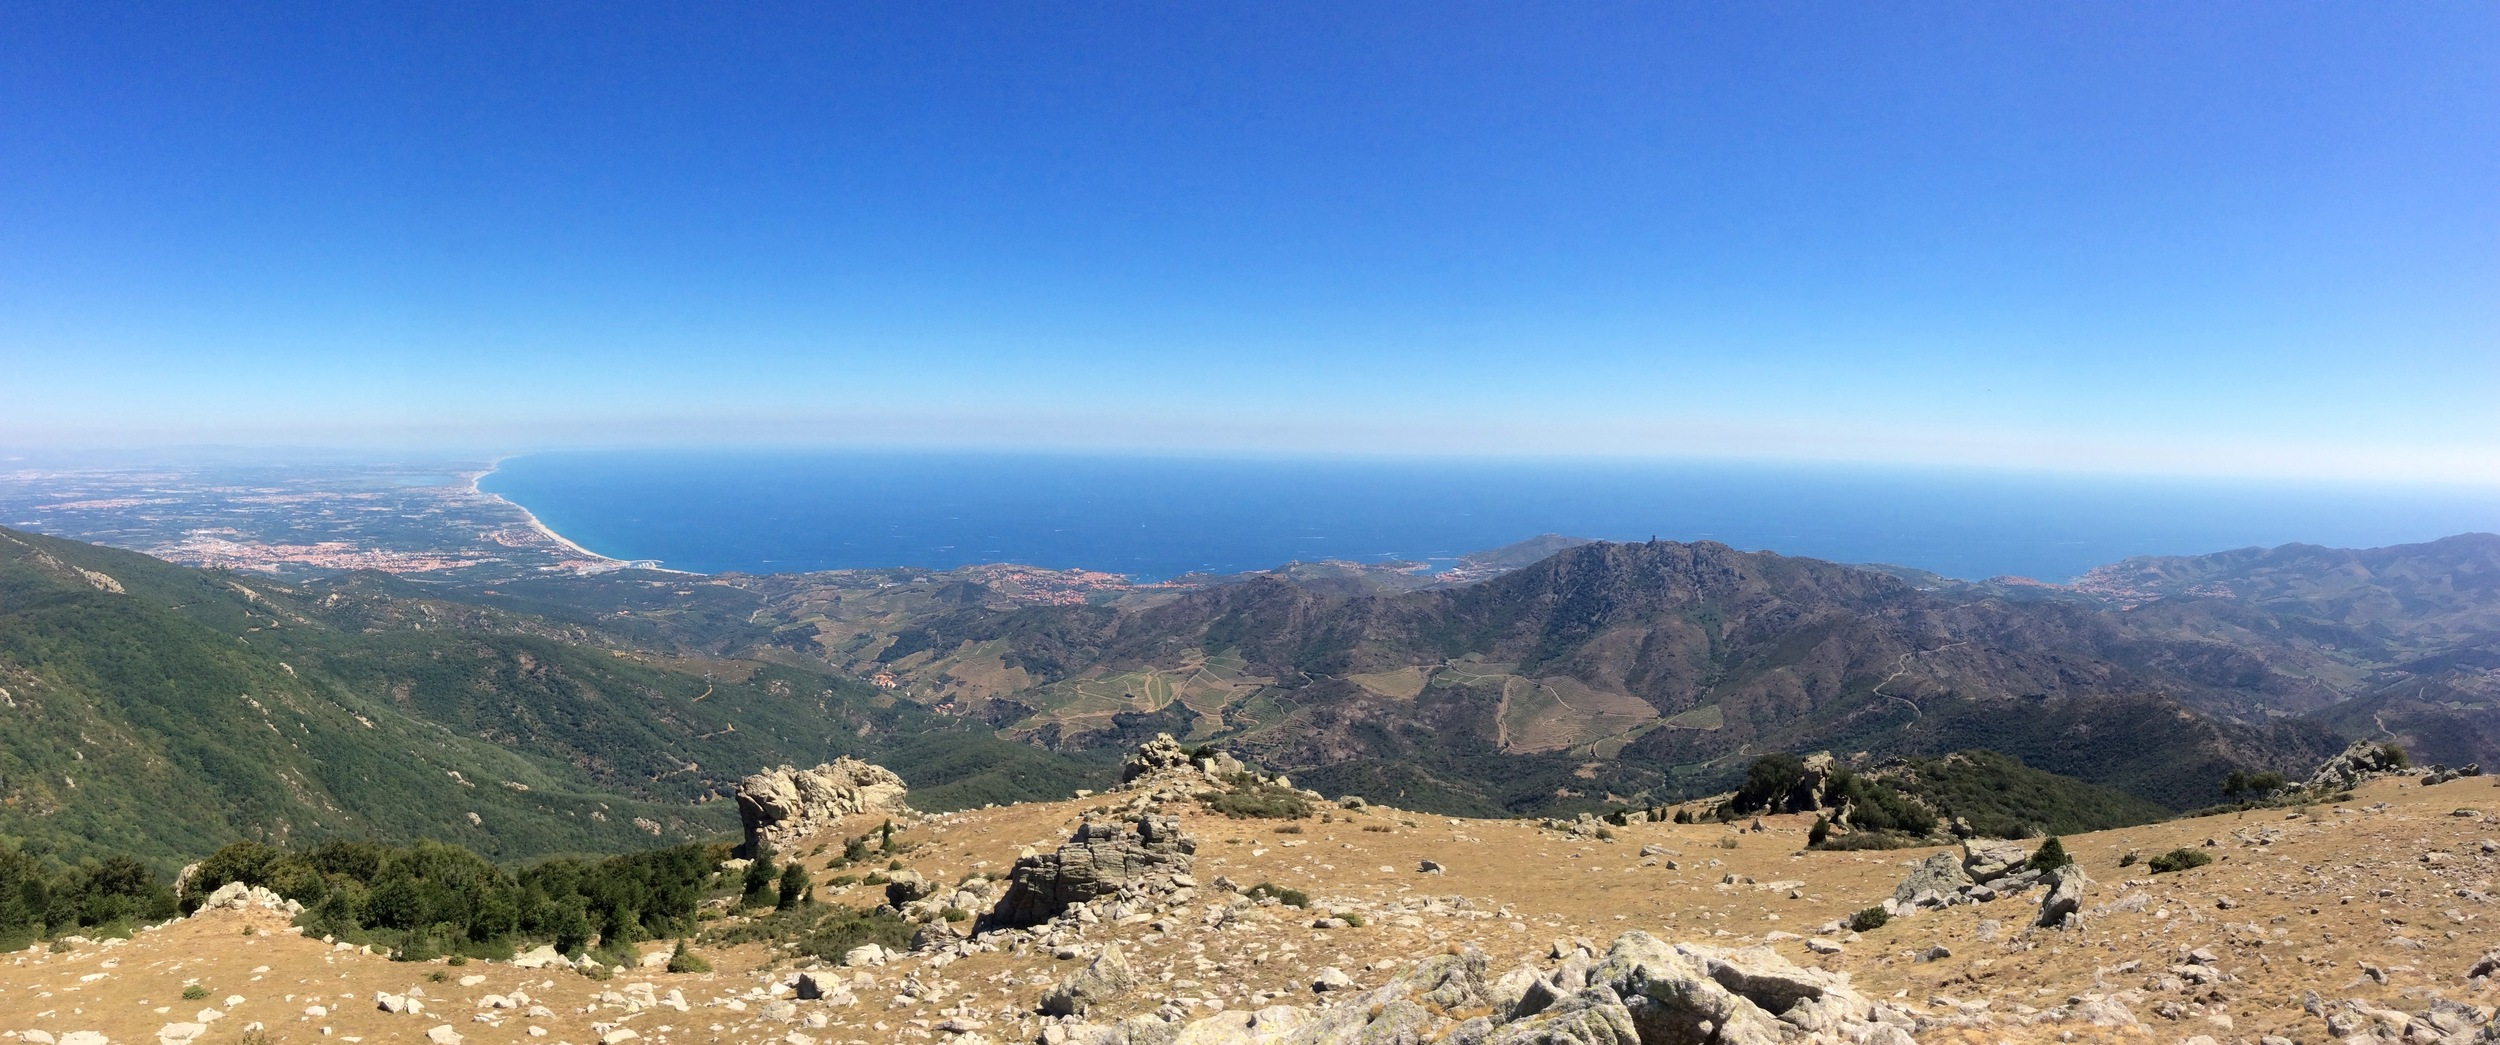 Banyuls on the right